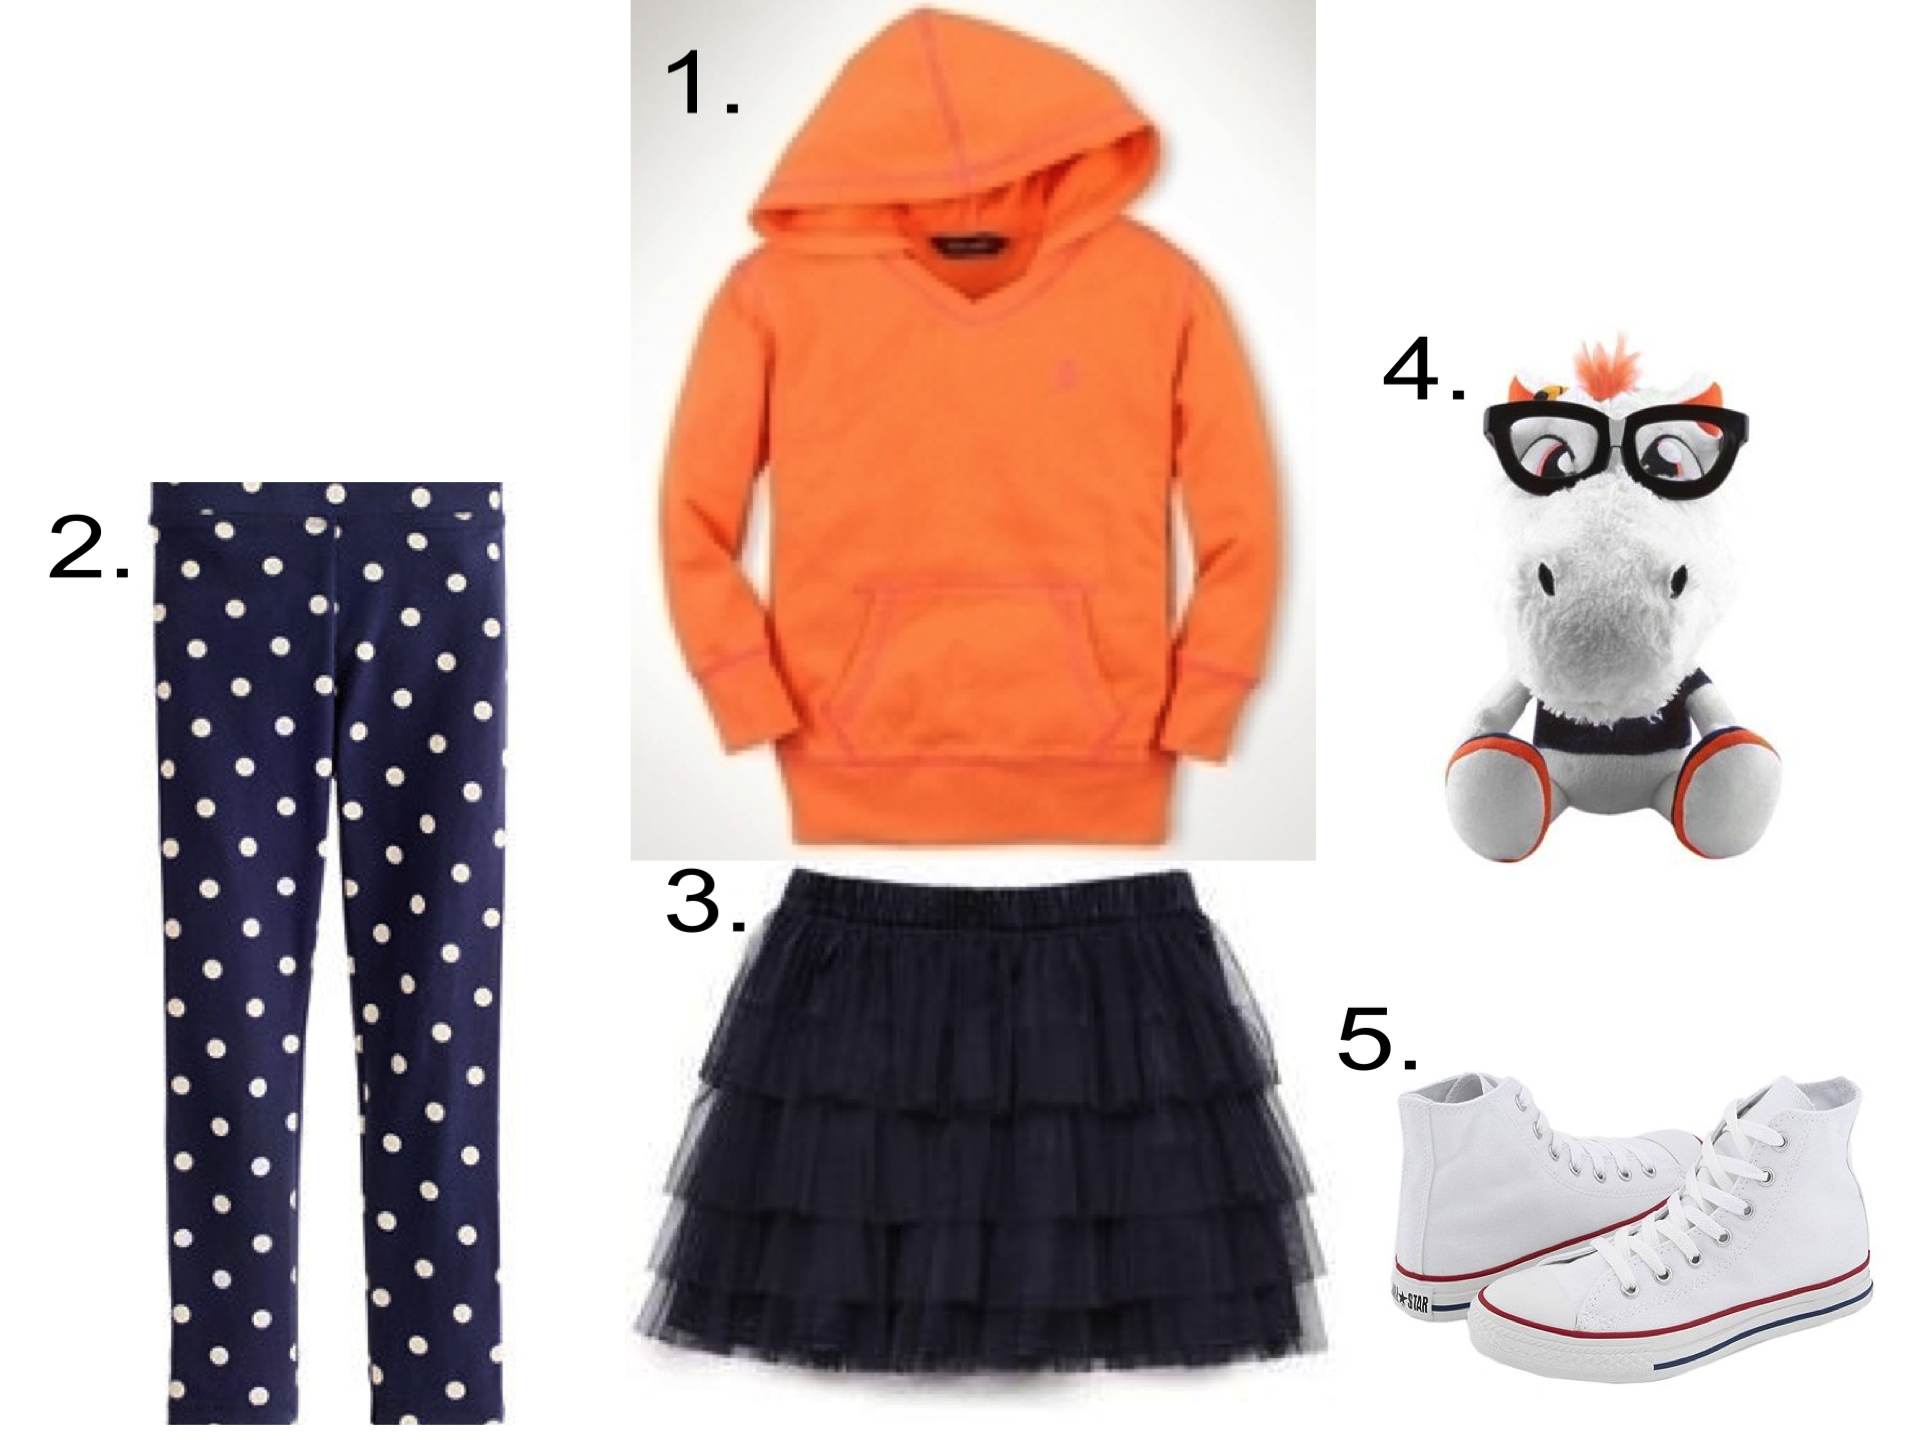 For Darling Little Denver Broncos Fans I love a Hoodie worn with a Tiered Tutu and Polka Dot Leggings in her Favorite Team's Colors. Since I like mixing Girly with Tomboy, these Converse High Tops are perfect to complete her Game Day Outfit.She will Love this Plush Team Mascot with nerdy glasses (very trendy and geek chic!)  1. Ralph Lauren  Contrast Cover Stitched Hoodie | 2. J.Crew  Girls' Everyday Leggings |3. Forever 21  Fancy Tulle Skirt  |4.  Denver Broncos Mascot Study Buddy  |5.Converse All Star® Core Hi Top